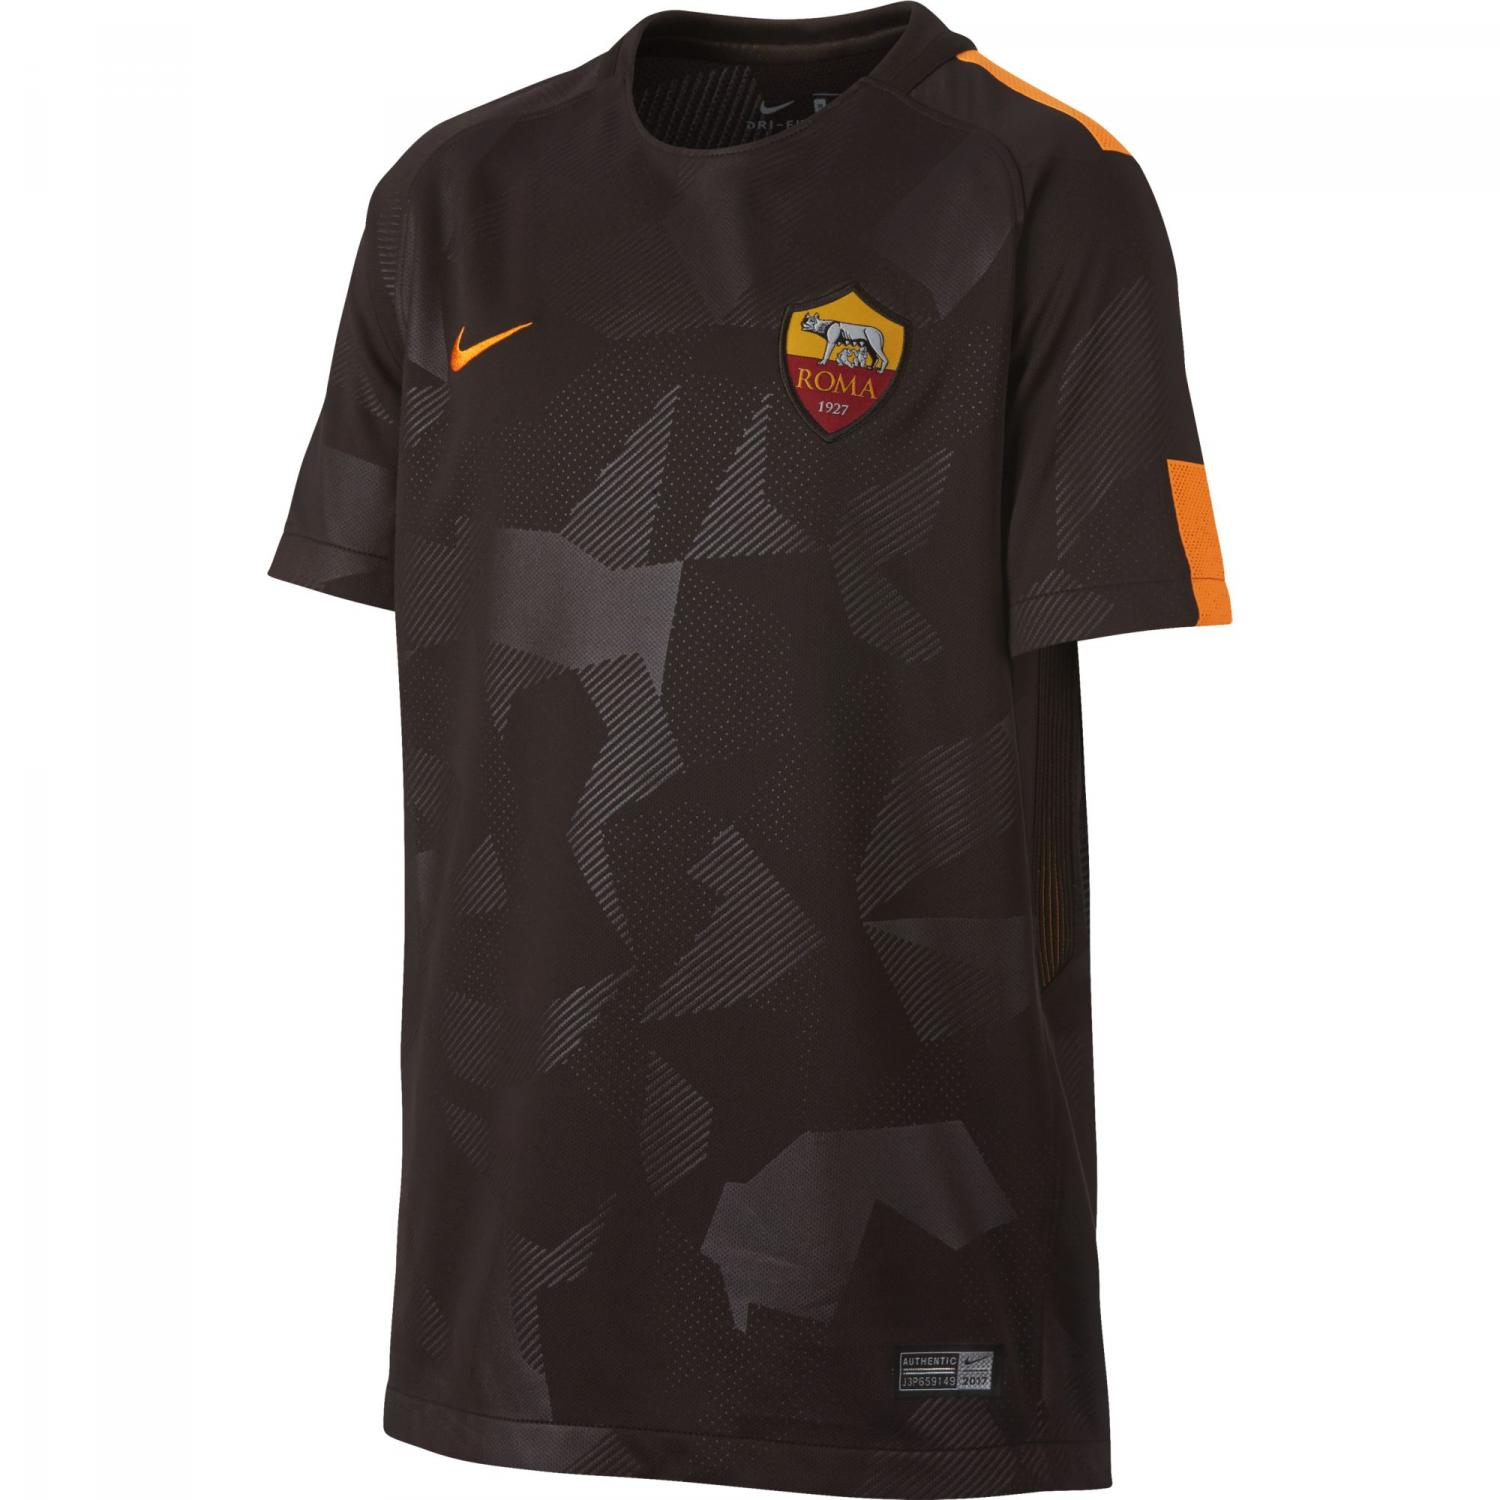 Nike Jersey Third Roma Junior  17/18